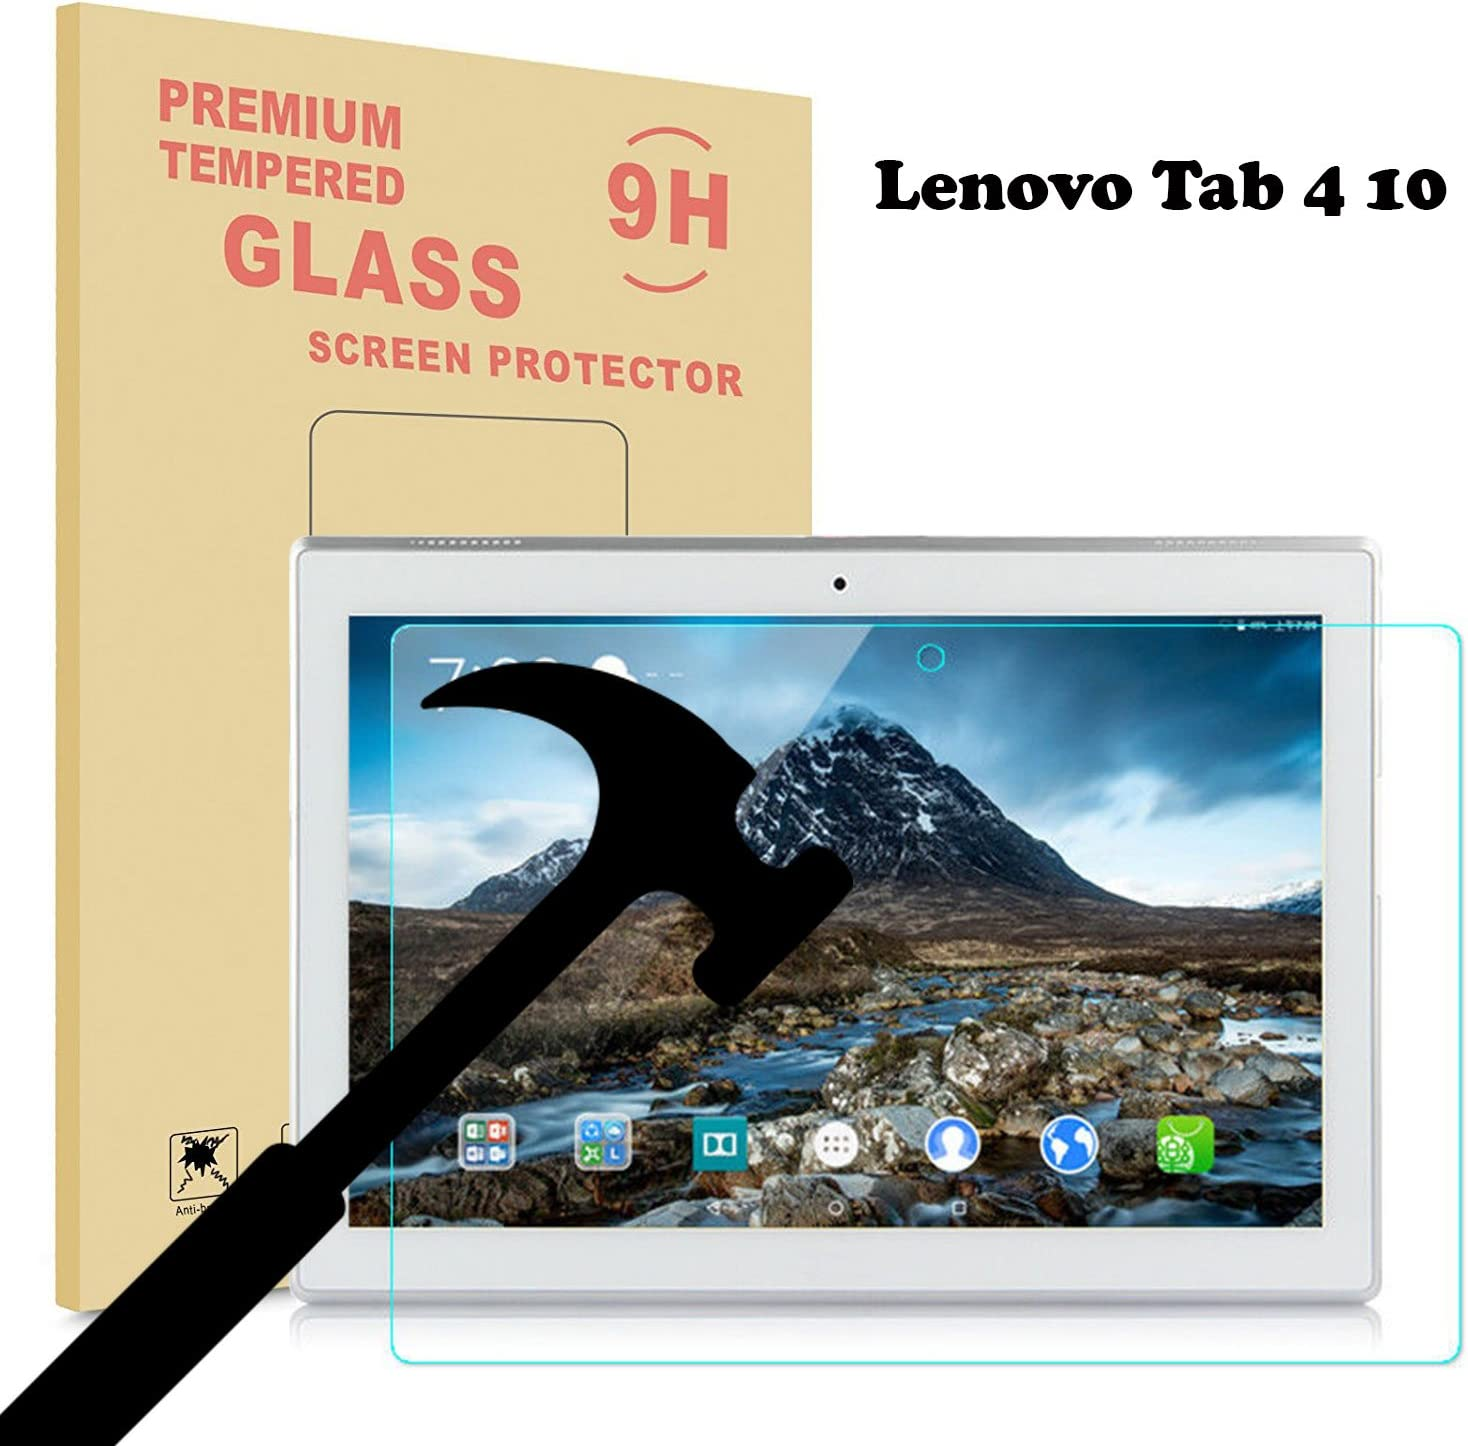 2017 New Lenovo Tab 4 10 Glass Screen Protector, EpicGadget for Lenovo Tab 4 10 Tablet Released in 2017 Ultra HD Clear Anti Bubble Anti Scratch 9H Hardness Tempered Glass Screen Protector